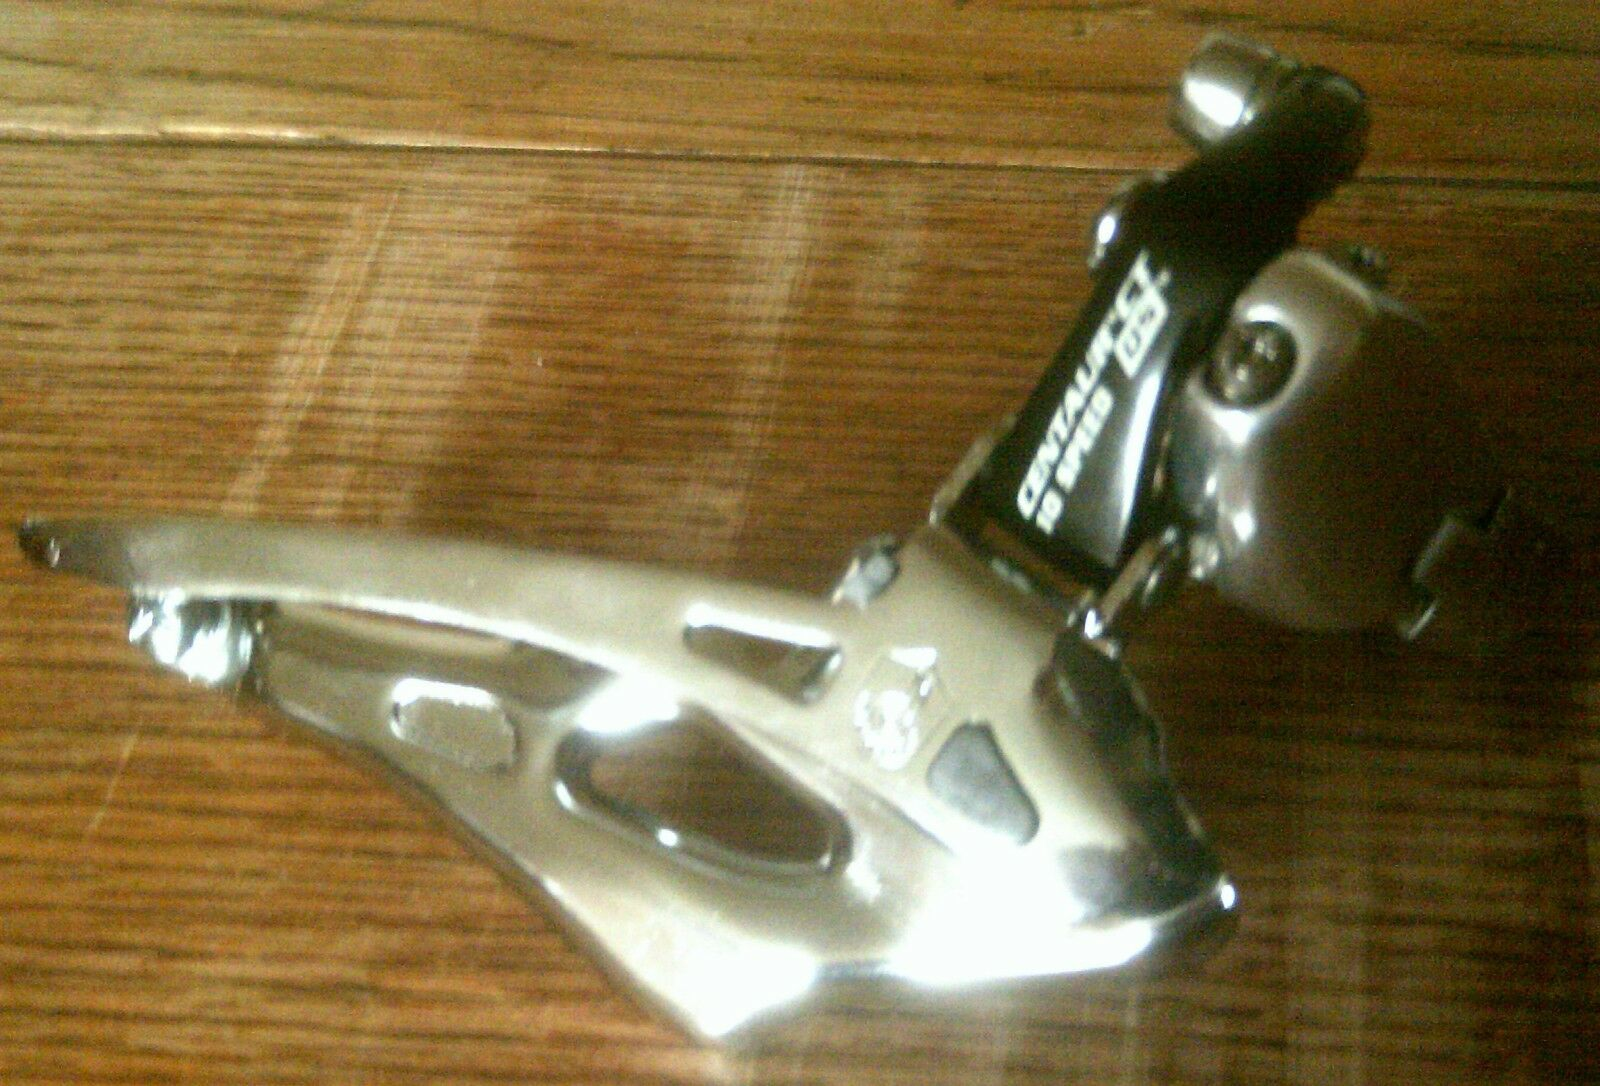 CAMPAGNOLO CENTAUR 10 SPEED  COMPACT    FRONT DERAILLEUR  32mm CLAMP  | Moderater Preis